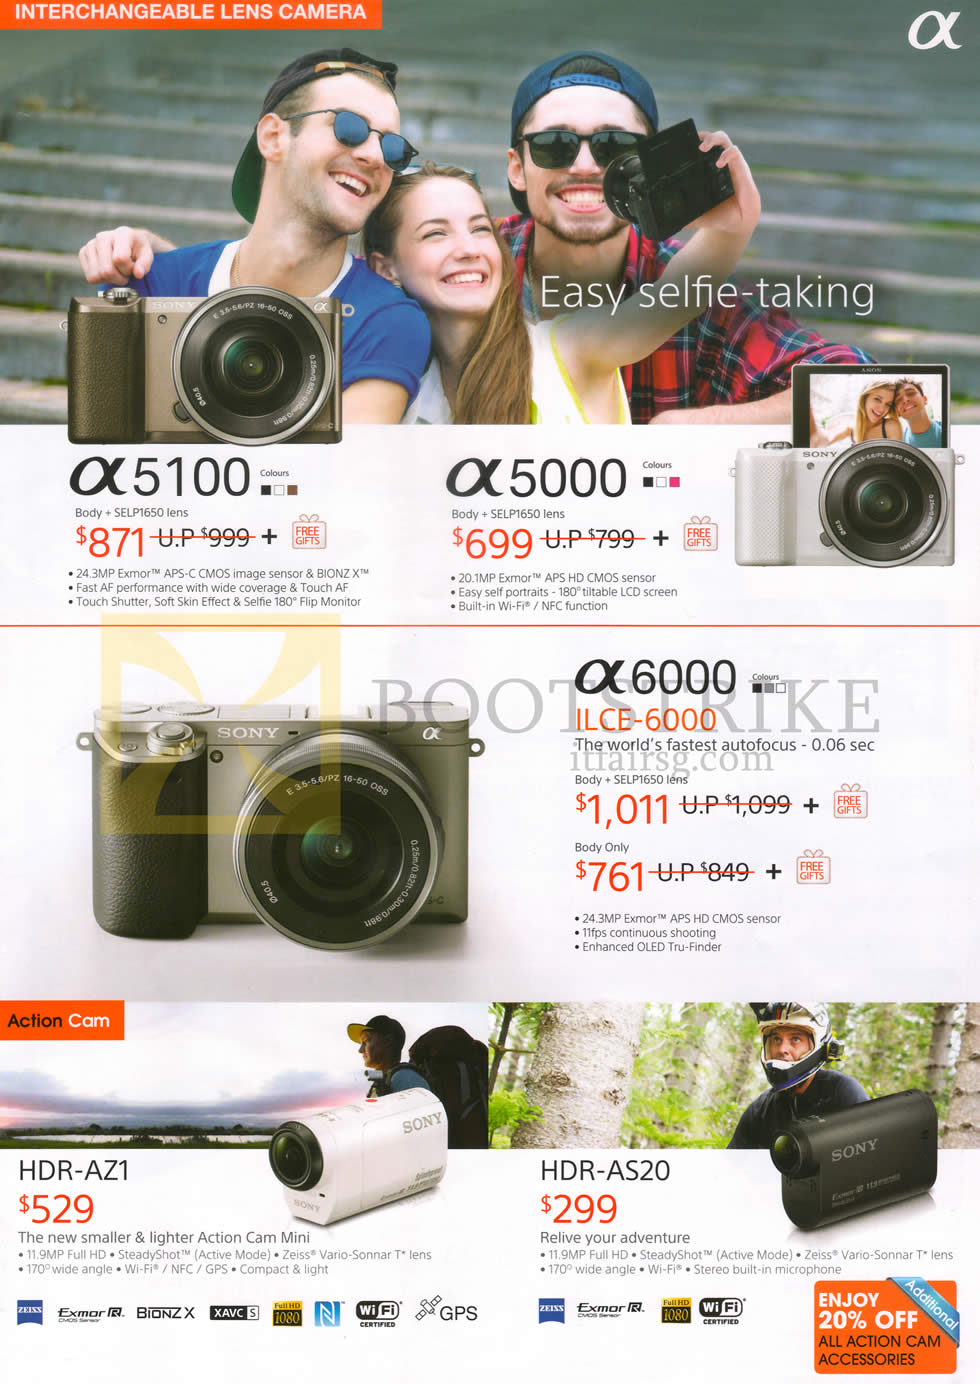 IT SHOW 2015 price list image brochure of Sony Digital Cameras Alpha A5100, A5000, A6000, HDR-AZ1 Camcorder Action Cam, AS20